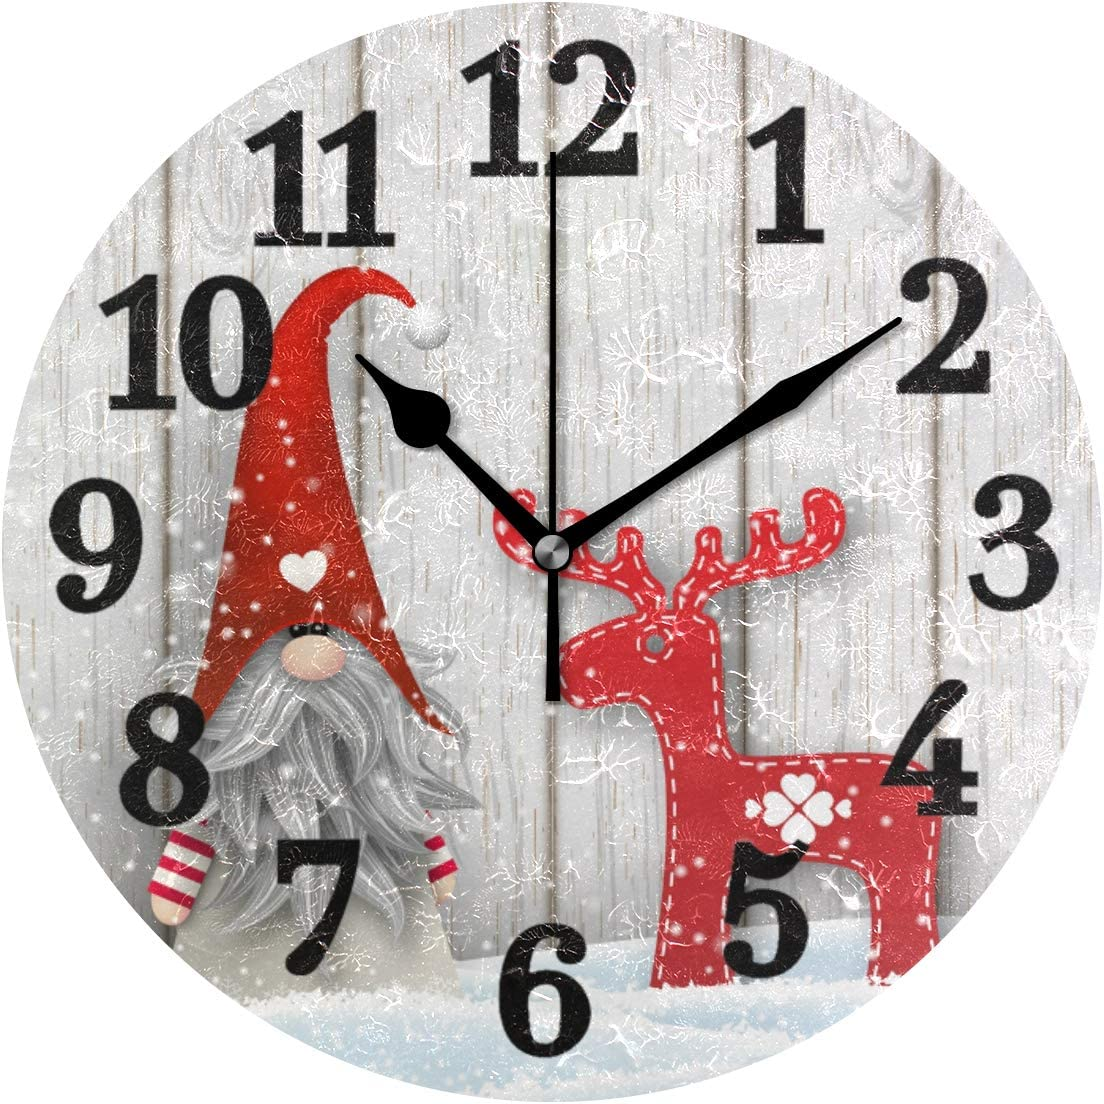 AHOMY Wall Clock Silent Non Ticking Christmas Gnome Wooden Winter Snowflake 10 Inch Quality Quartz Battery Operated Round Easy to Read Clock